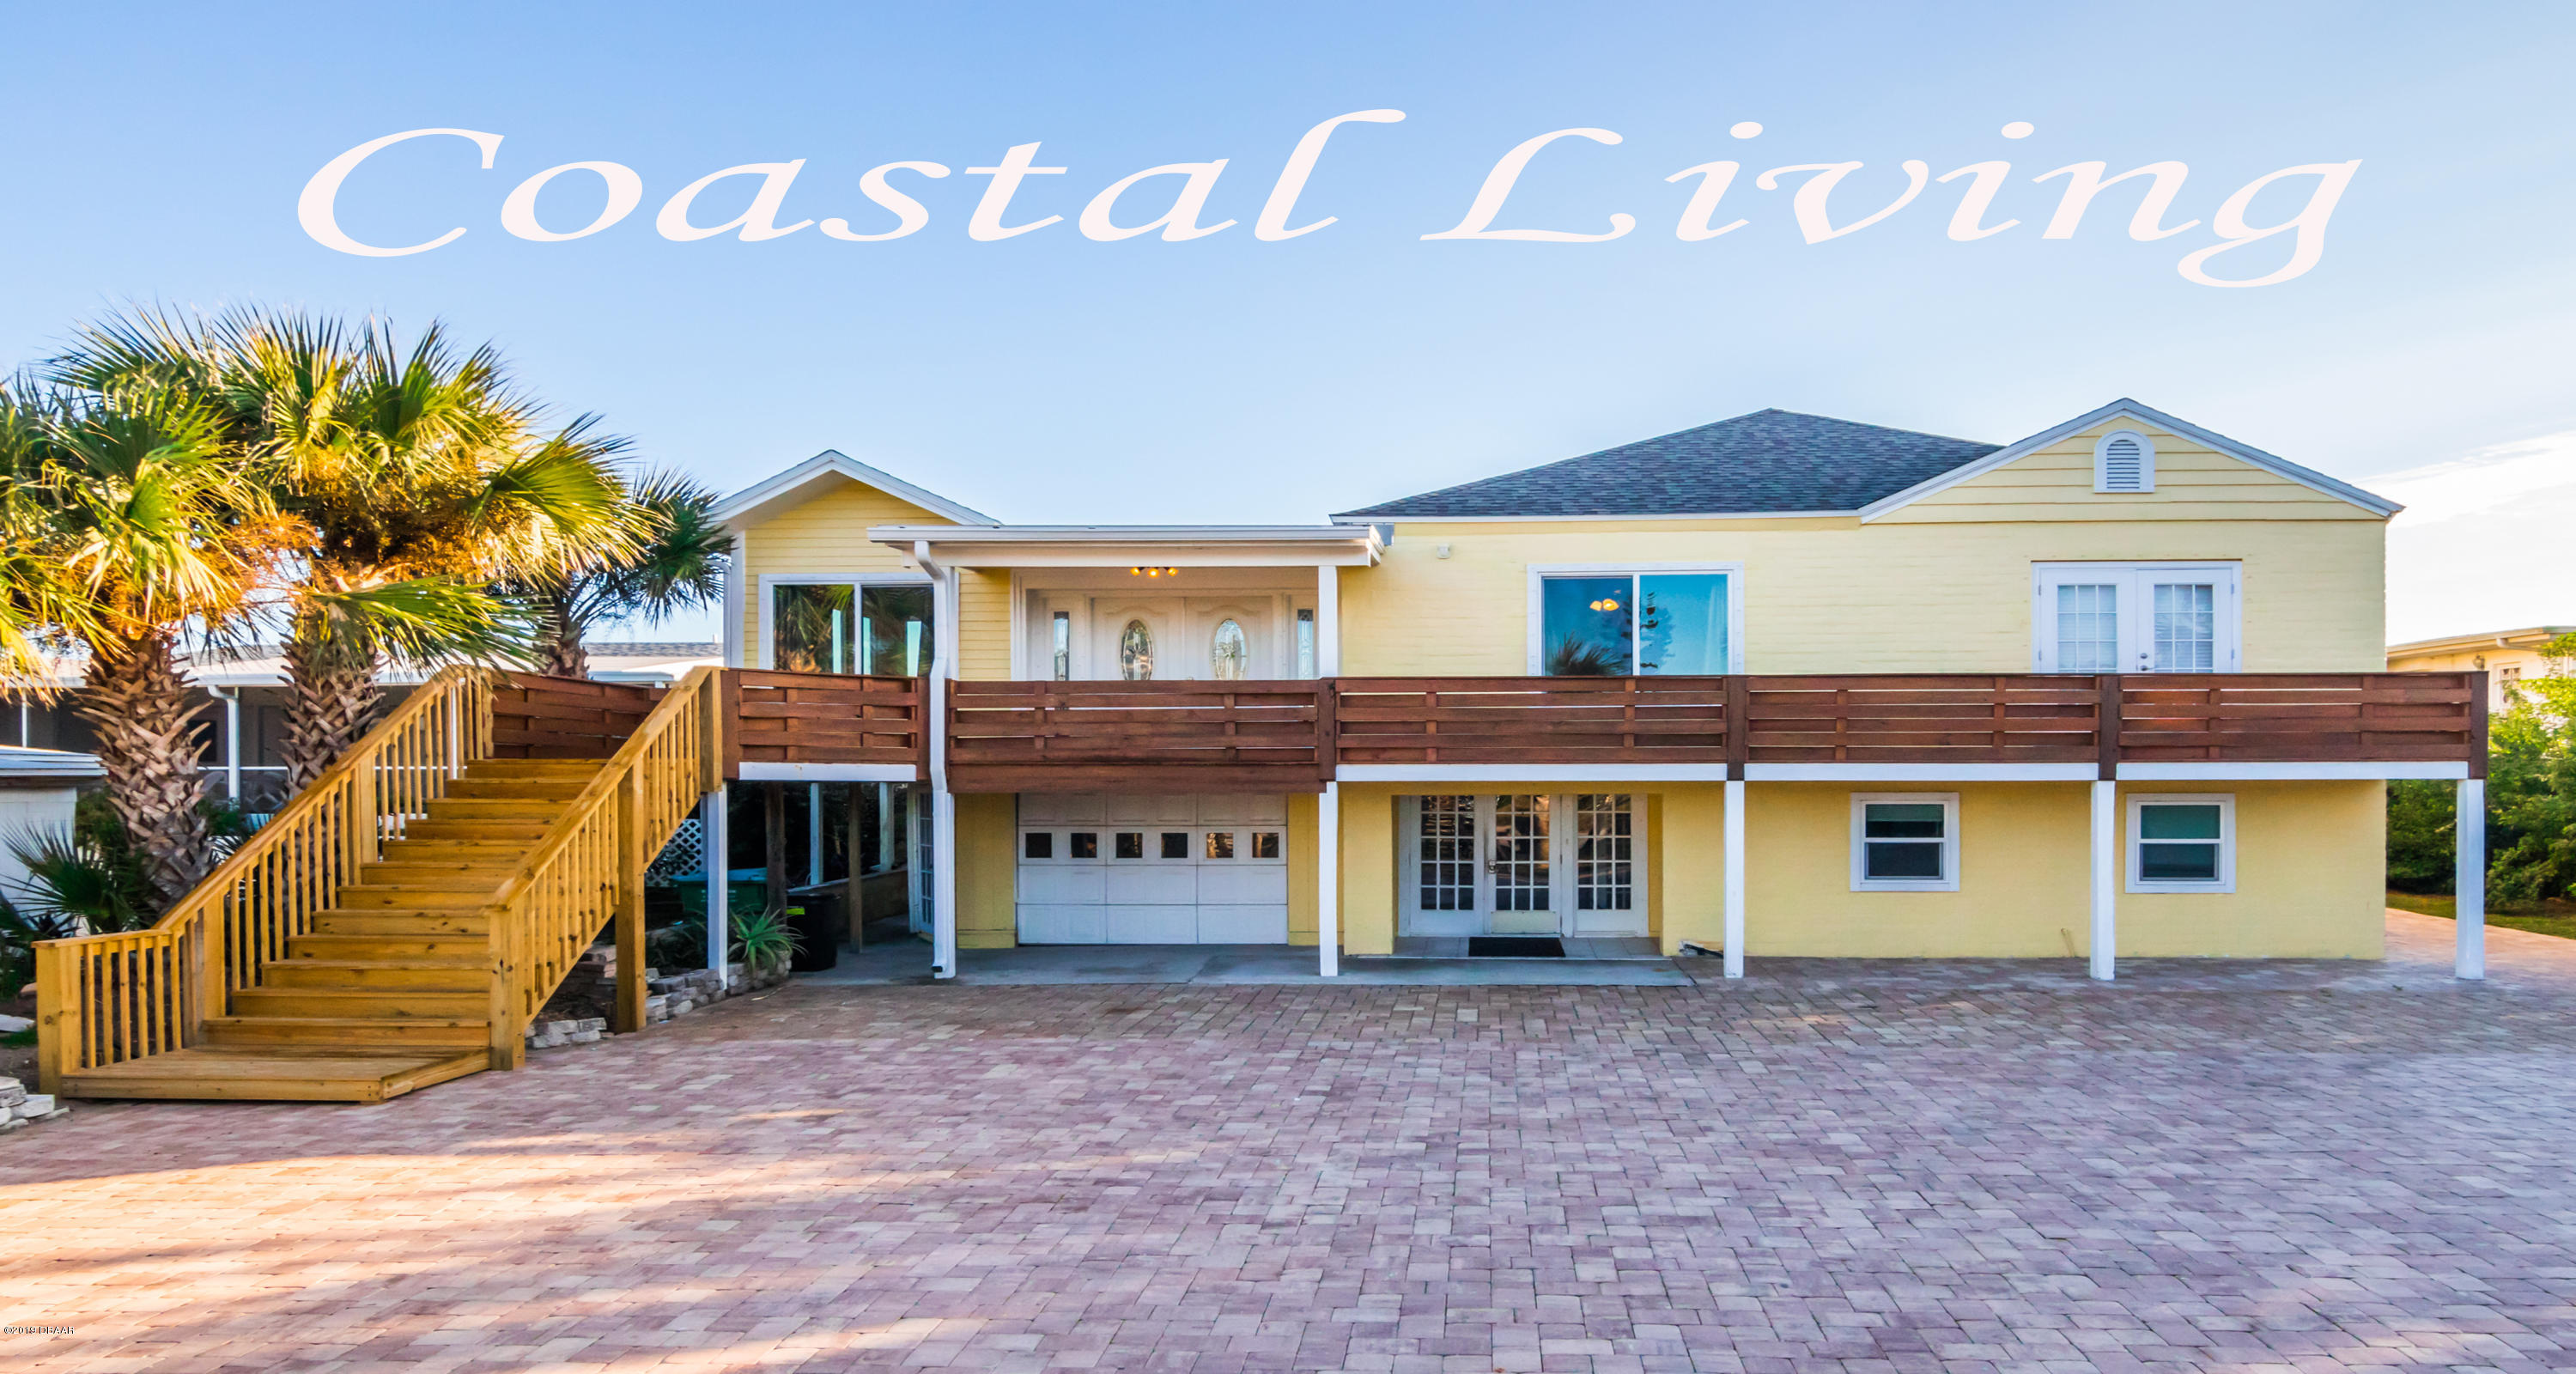 2801 S Atlantic Ave, Daytona Beach Shores, Florida 5 Bedroom as one of Homes & Land Real Estate